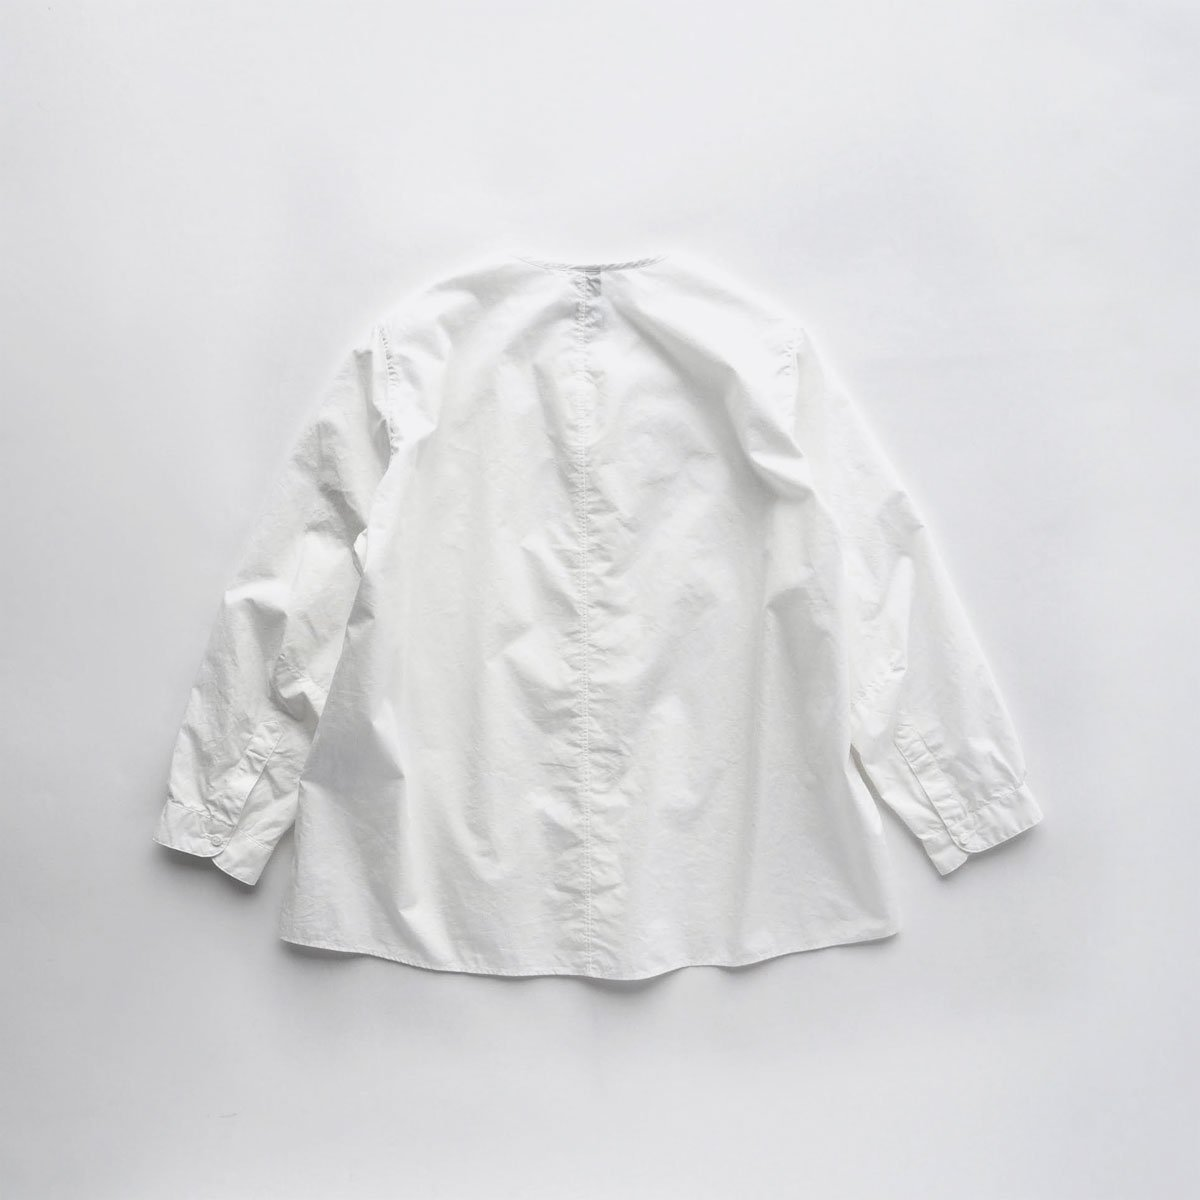 NO CONTROL AIR 60/1 SUPIMA COTTON TYPEWRITER NO COLLAR SHIRT (off white)2